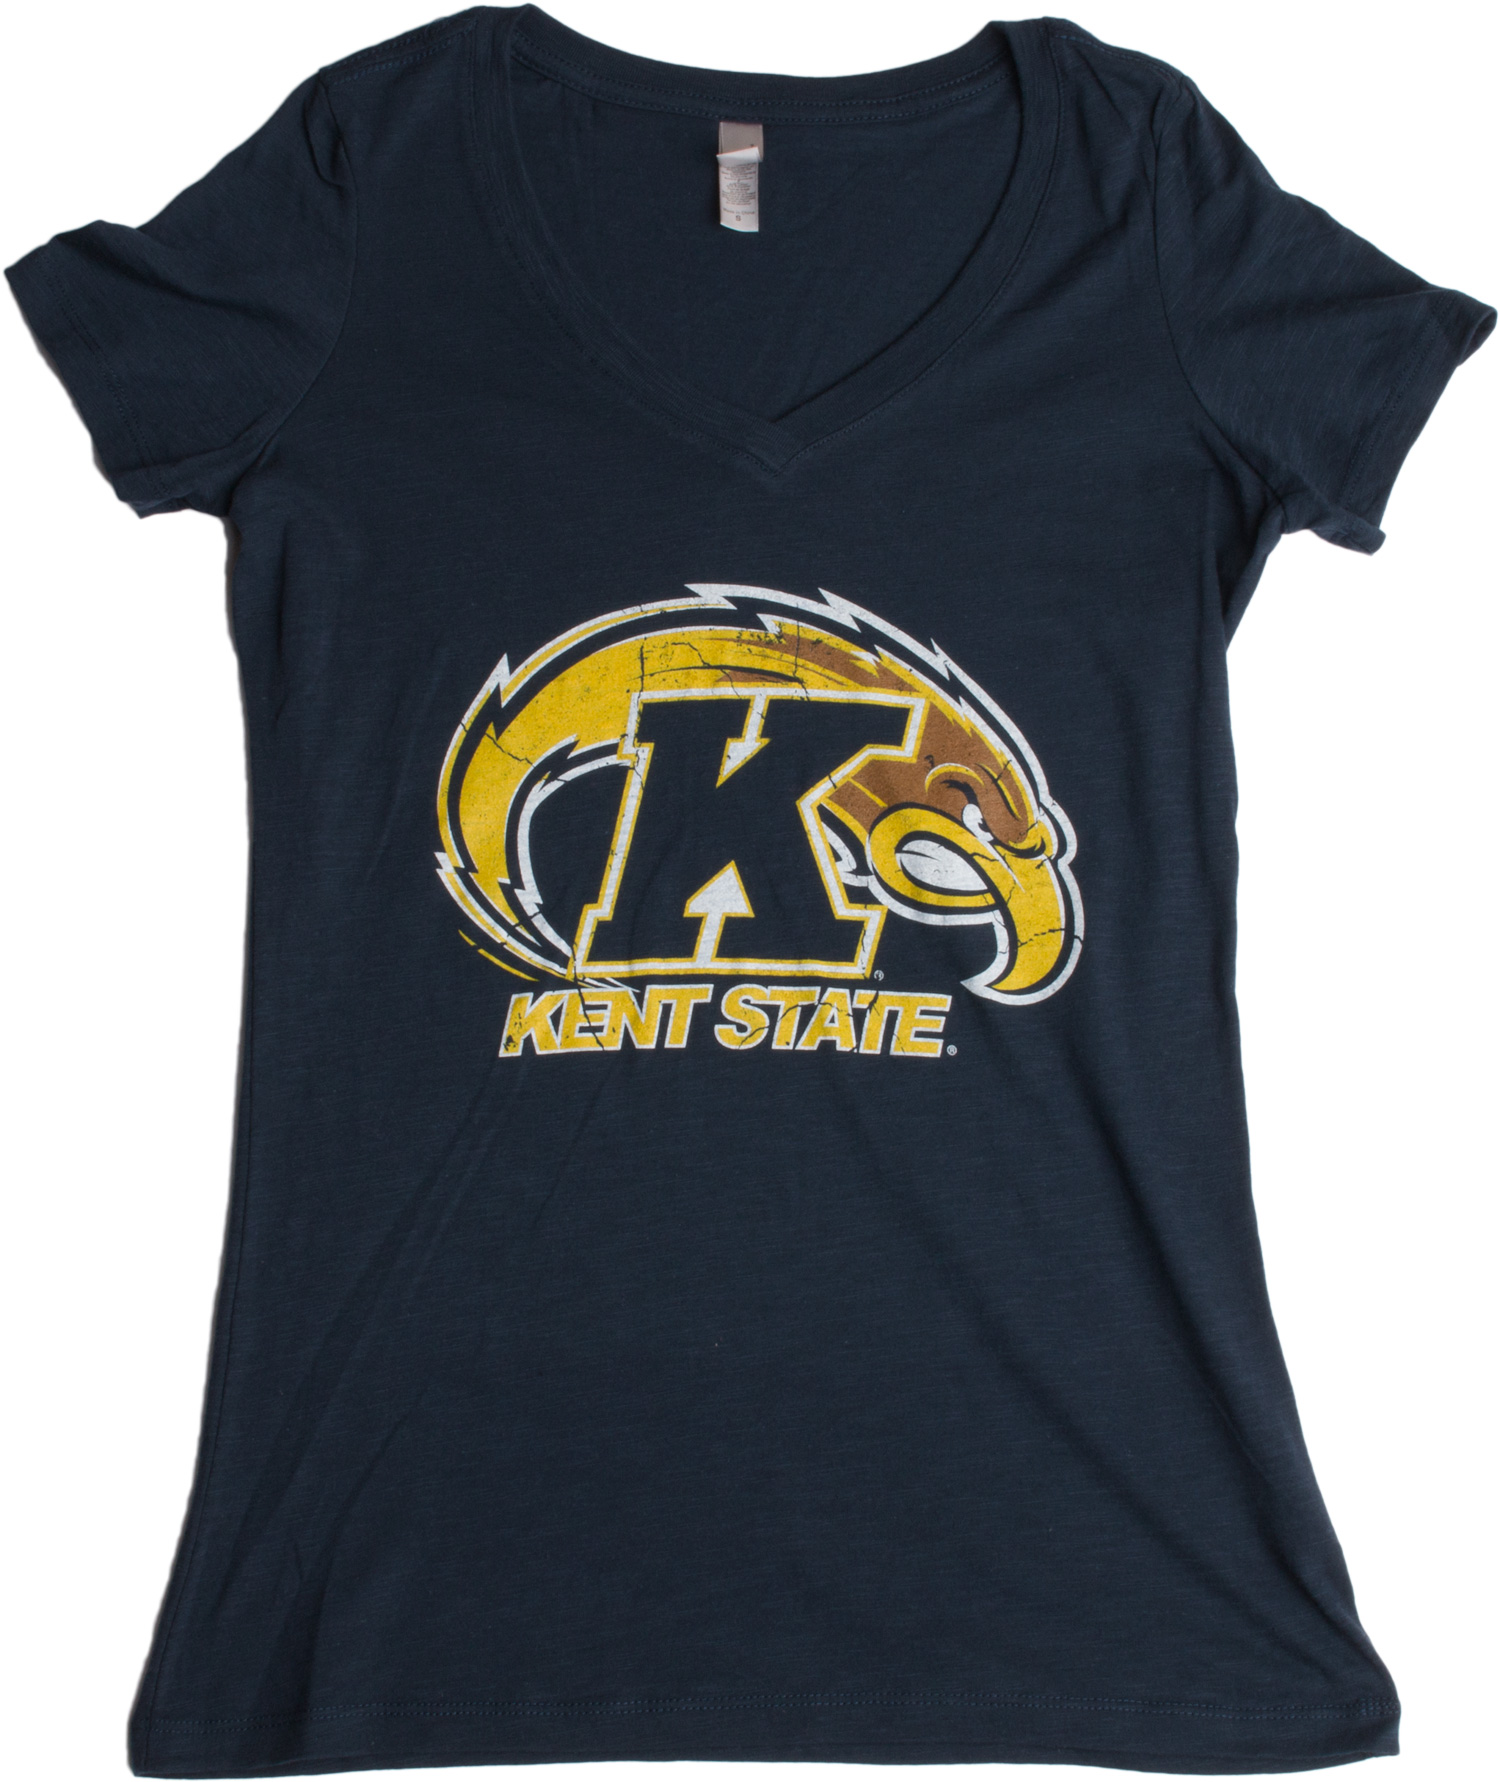 kent state university ksu golden flashes vintage style